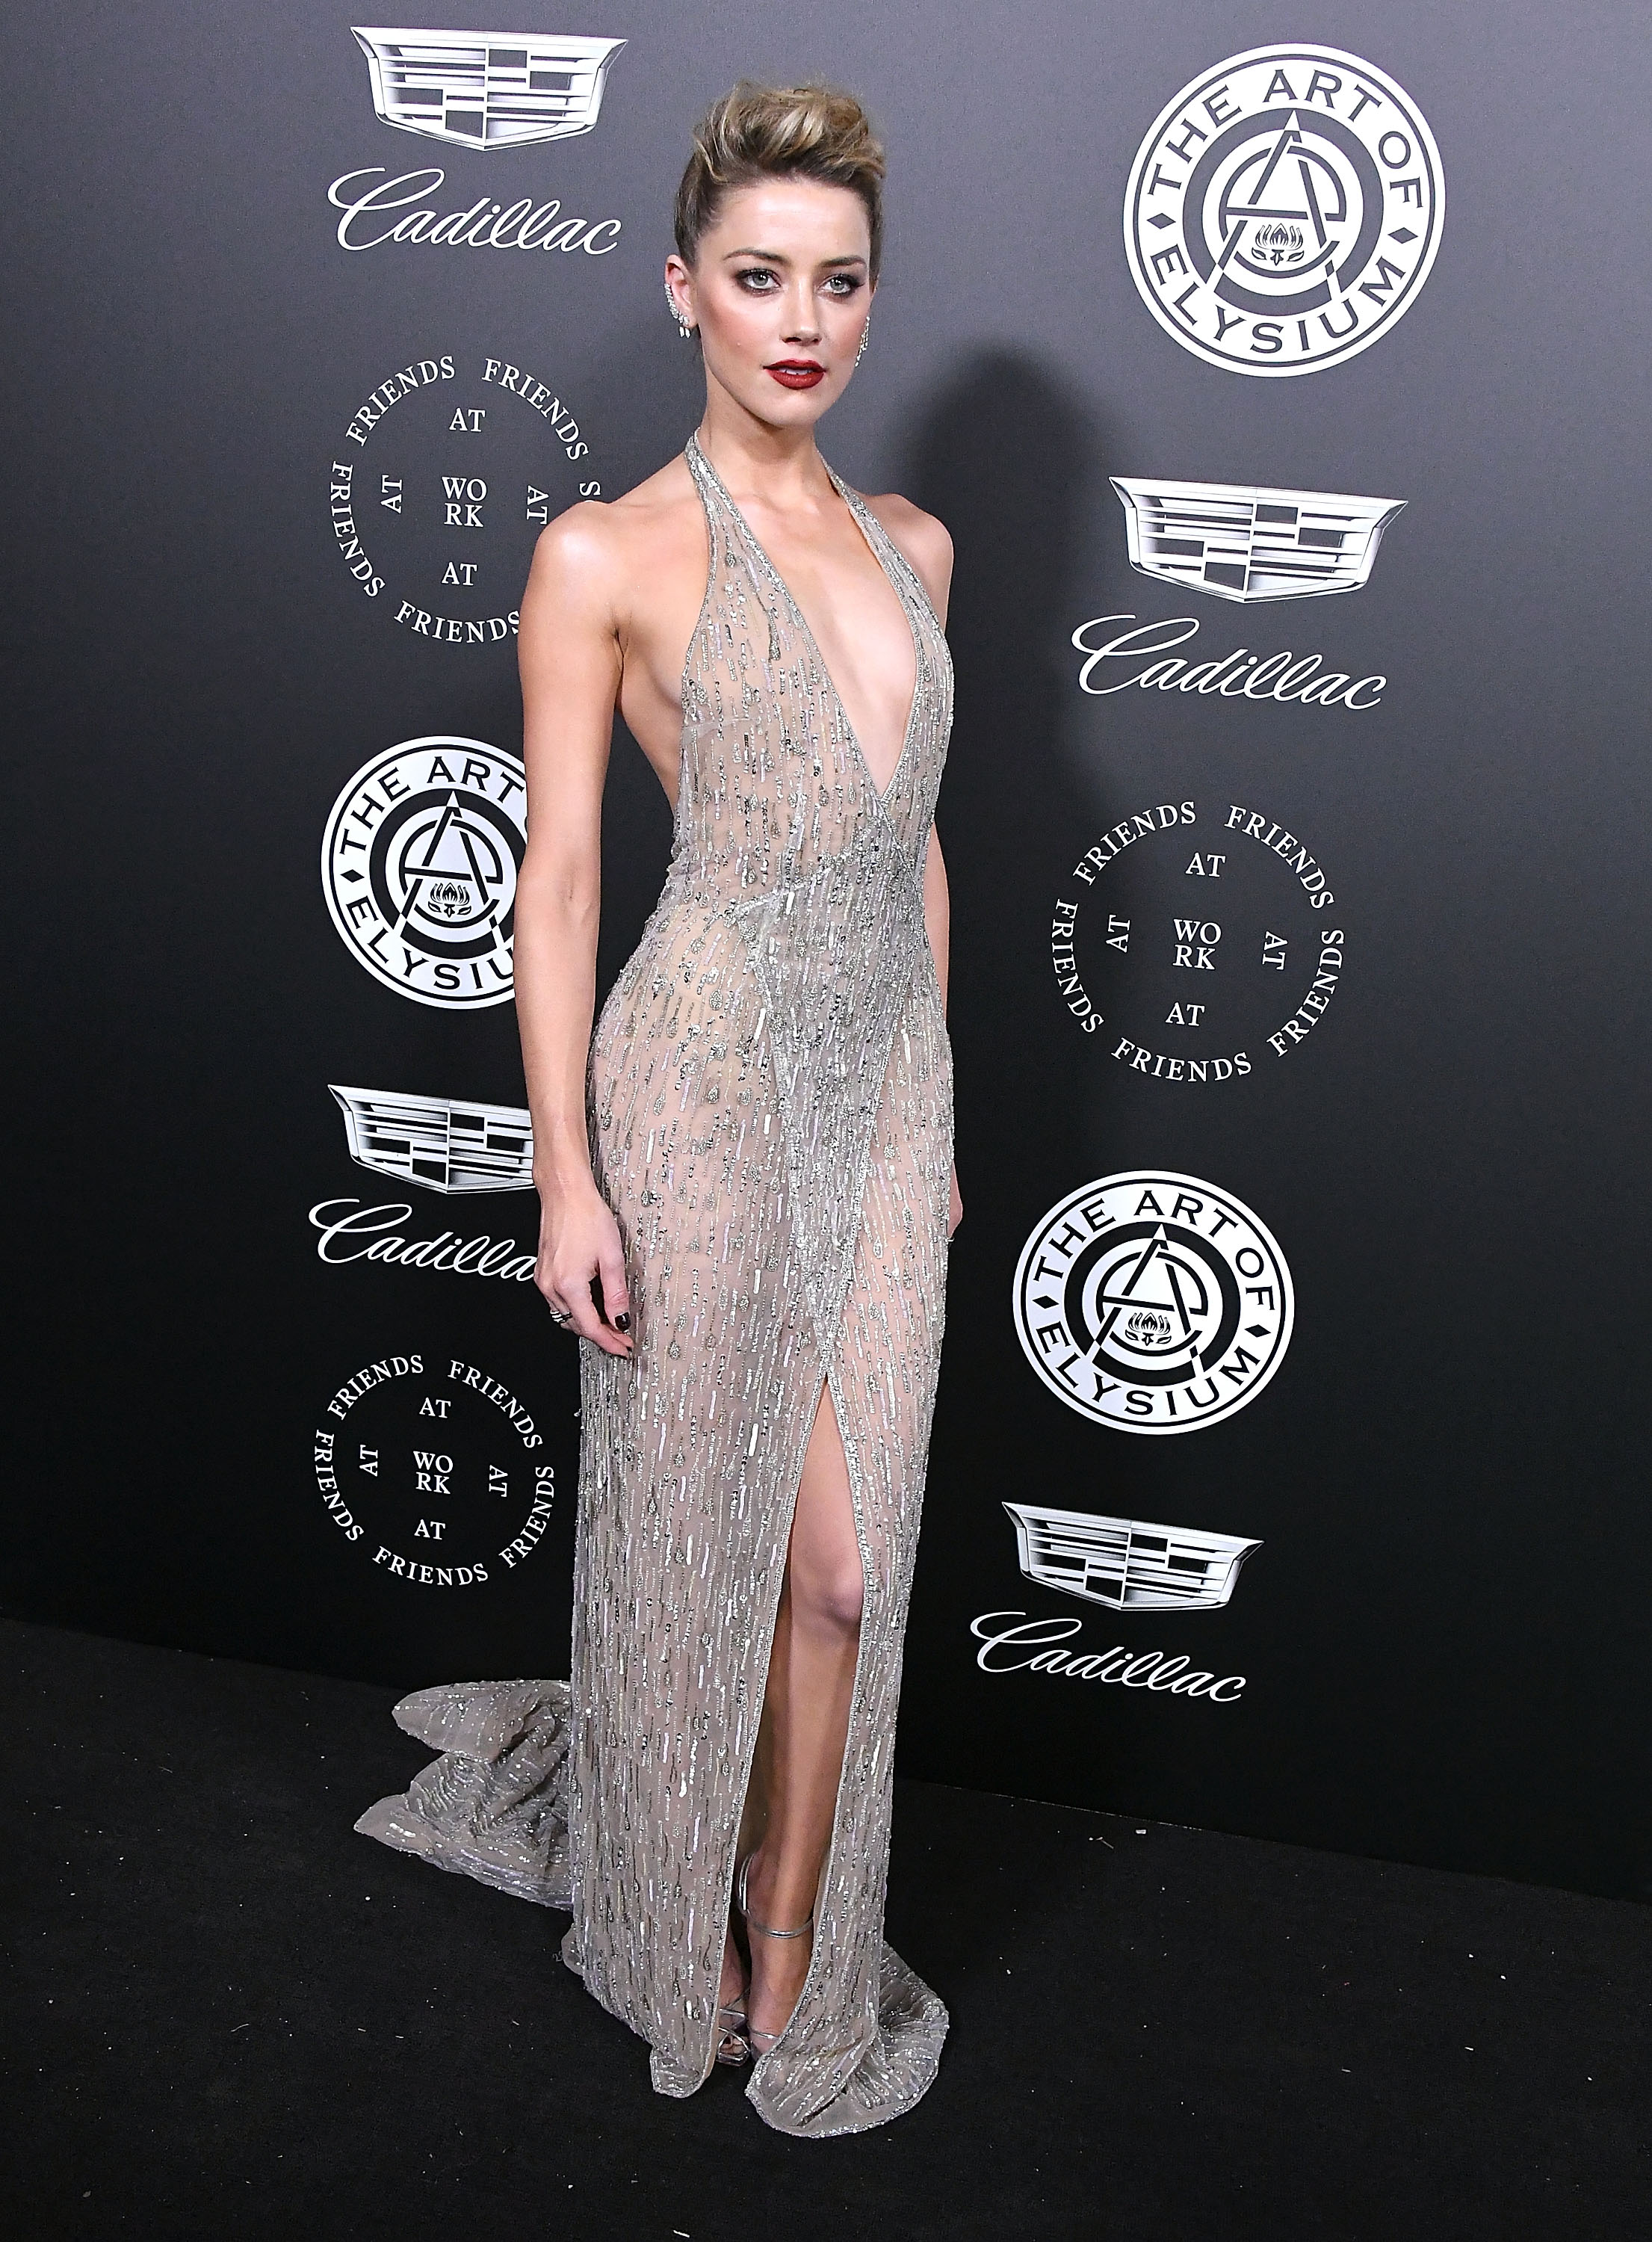 Amber-Heard-Dazzles-In-Sparking-Silver-Backless-Gown-At-Art-Of-Elysium-Gala